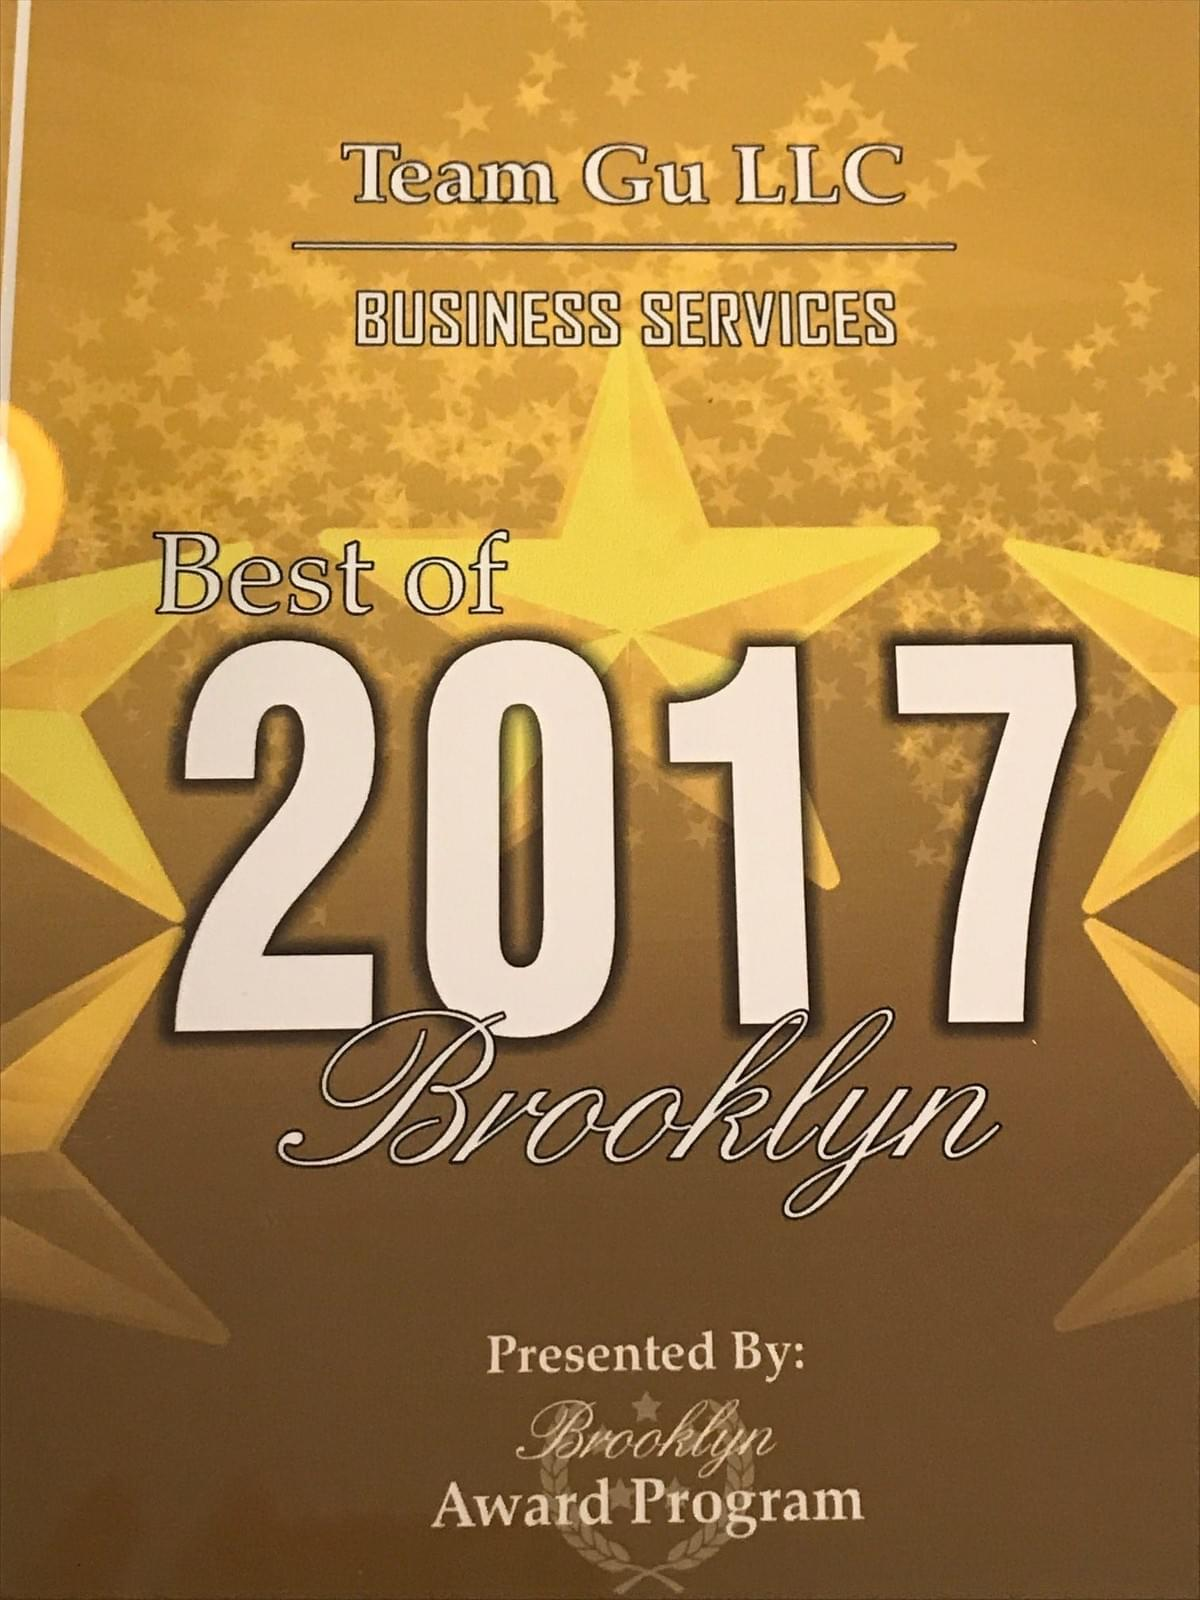 team-gu-award-winning-consultation-firm-business-services-charlotte-north-carolina-and-brooklyn-new-york-new-york-city-wins-award-2017